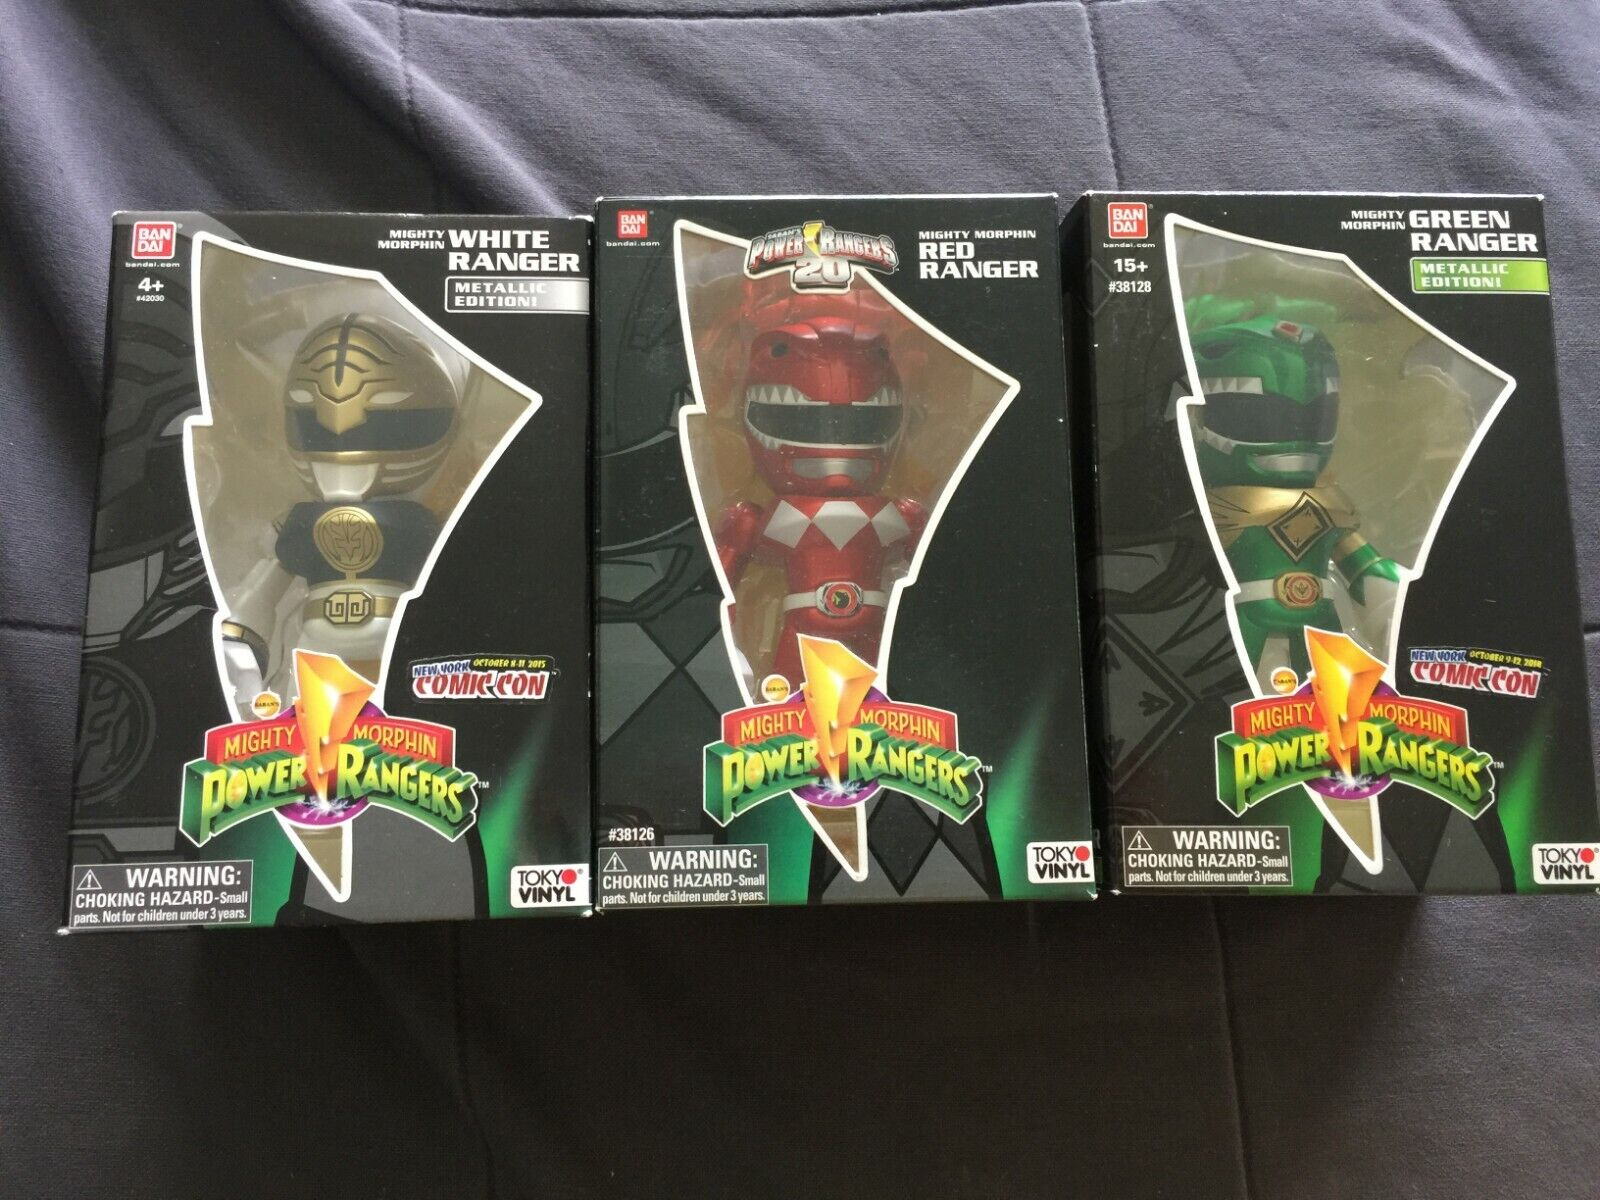 Brand new in box power rangers rot, Weiß, and Grün ranger SDCC exclusive